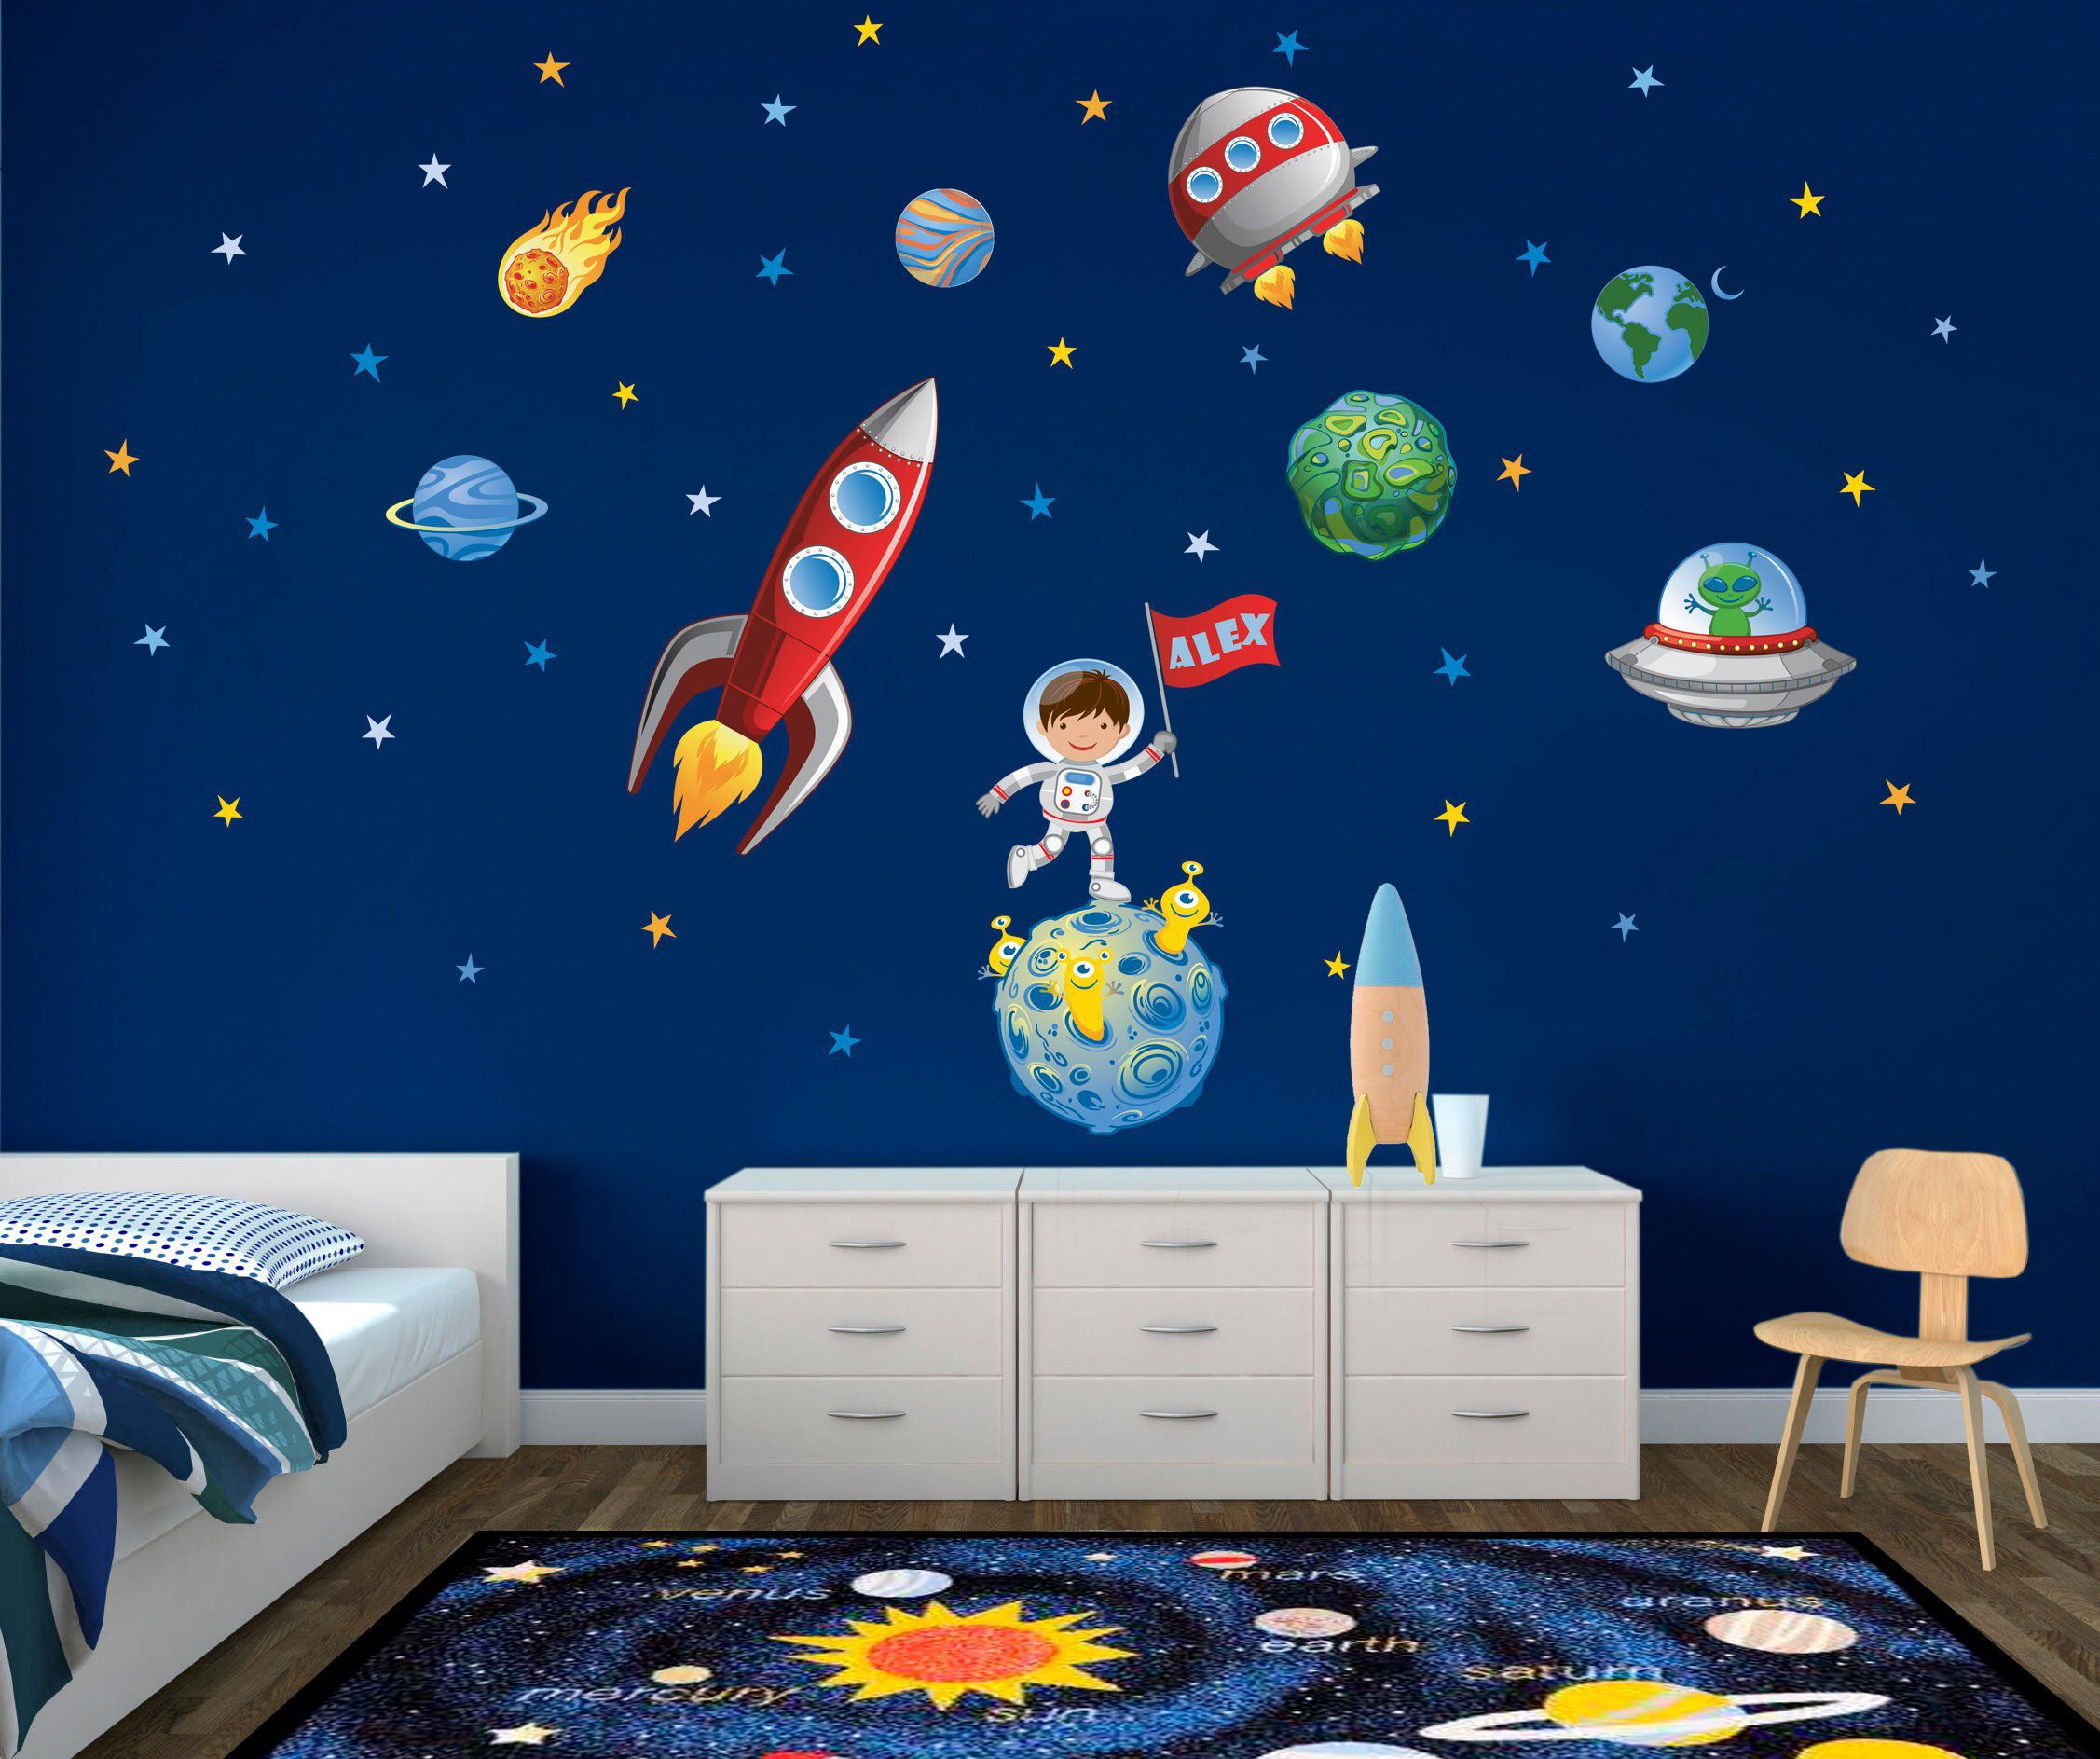 Rocket Personalised Wall Sticker Space Boys Girls Custom Name Kids Bedroom Wall Decals Stickers Home Furniture Diy Home Furniture Diy Children S Home Furniture